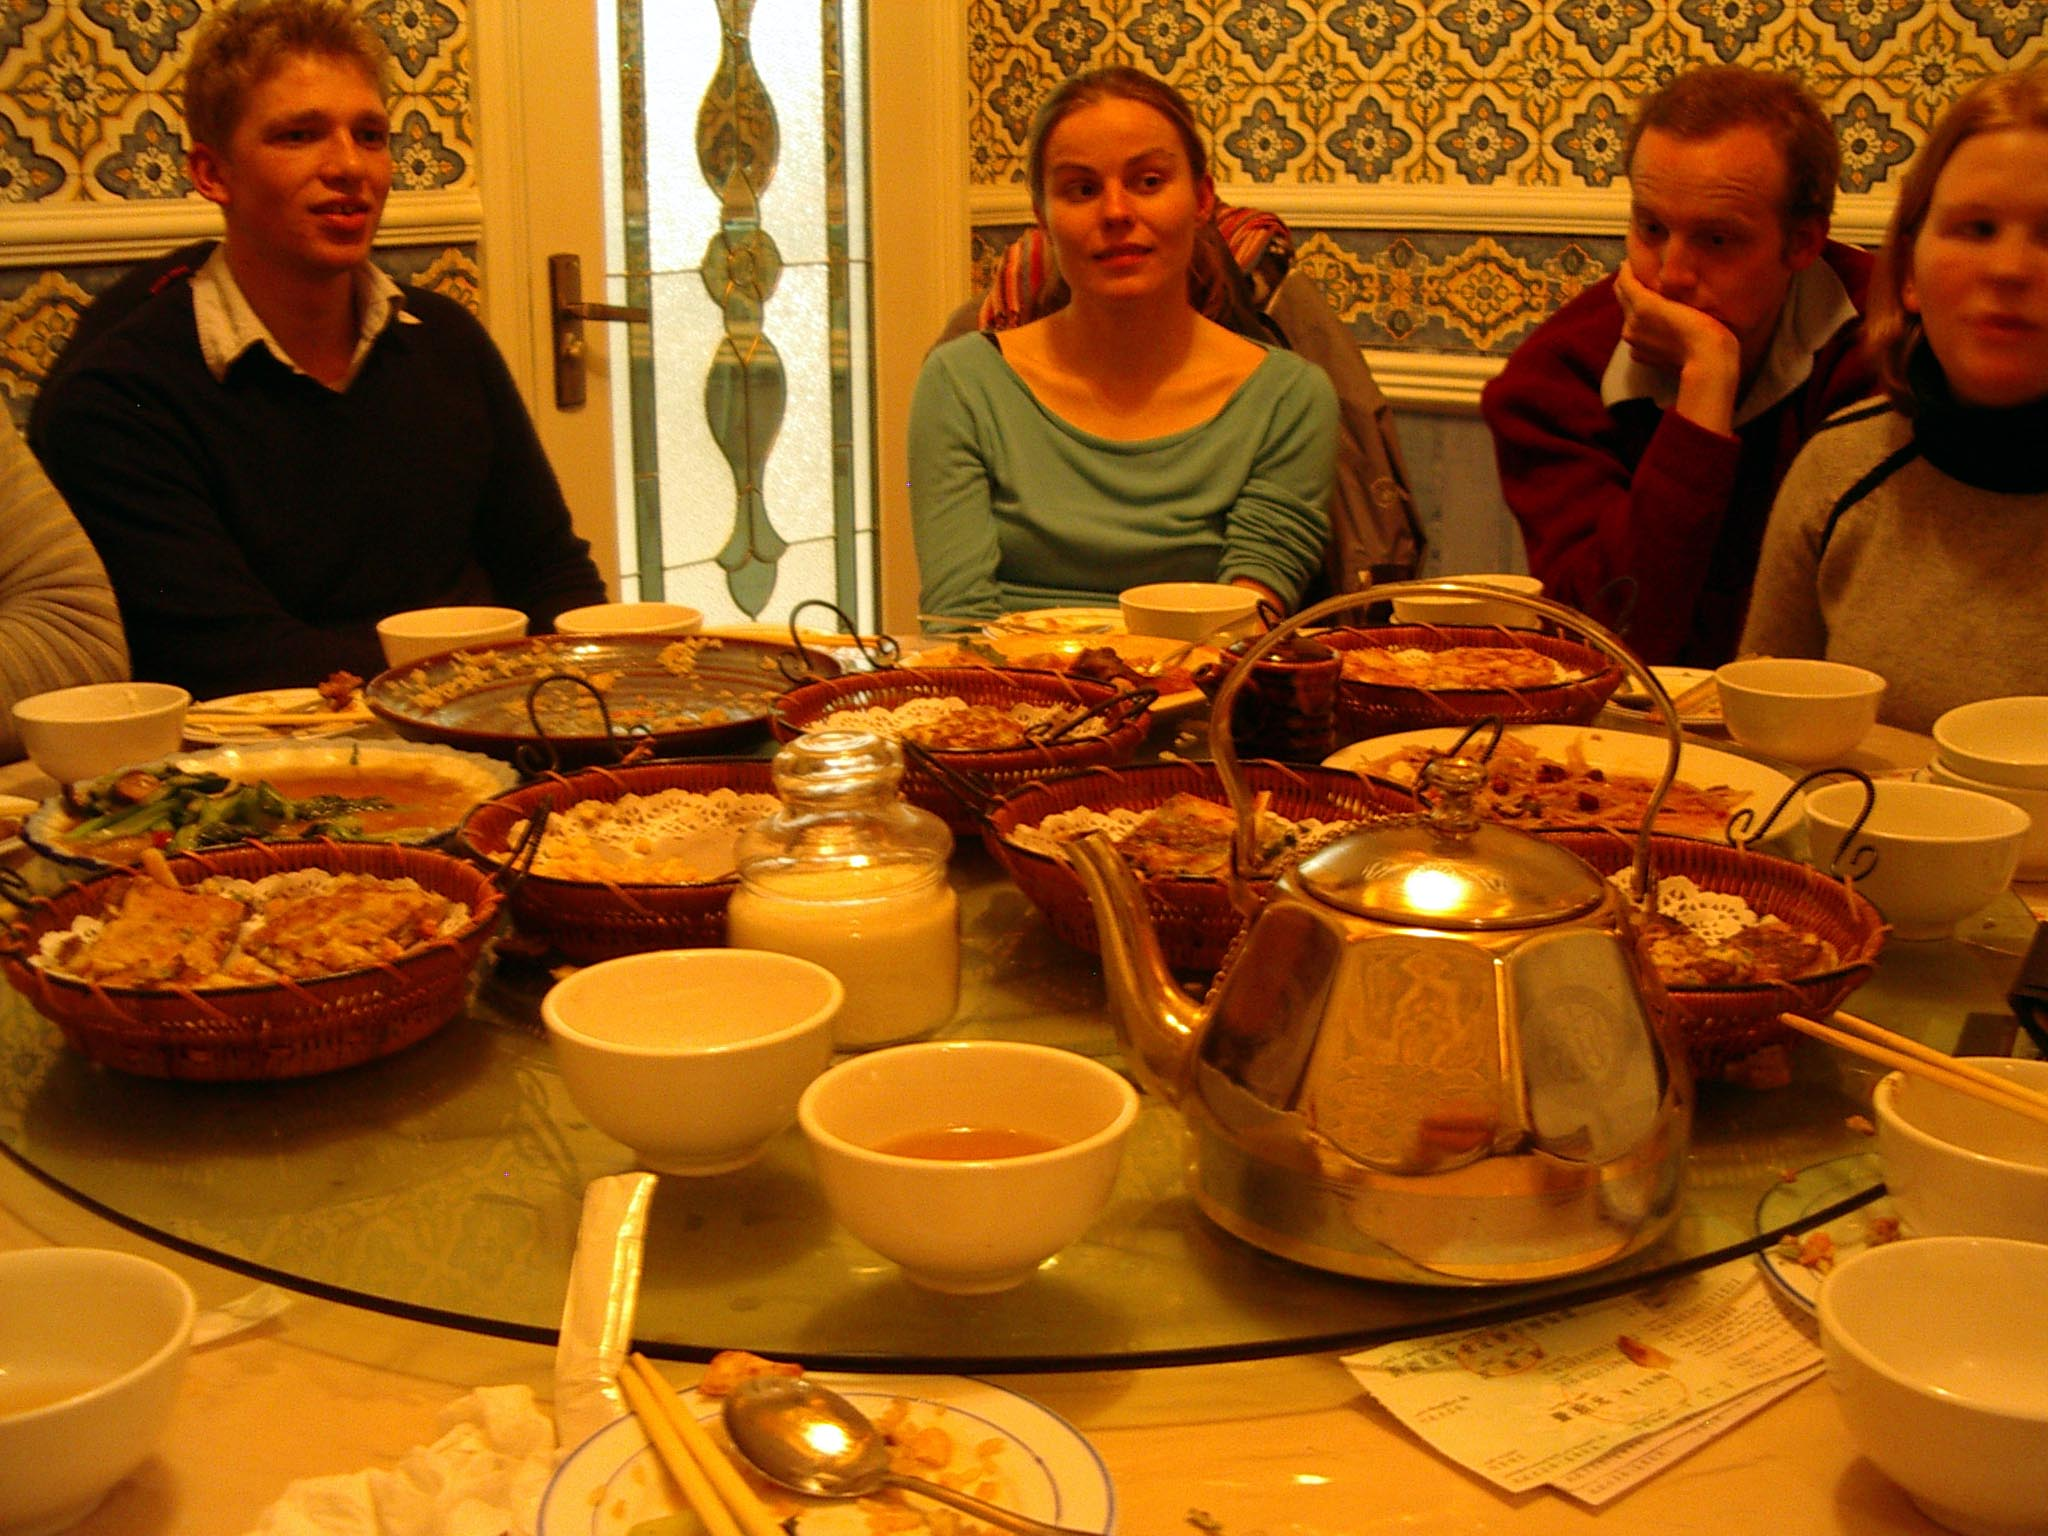 Dinner on my second night in Korla, at a Uyghur restaurant. L to R: William, Carrie, Big David...the Circle English boss, Zoe. All from England.